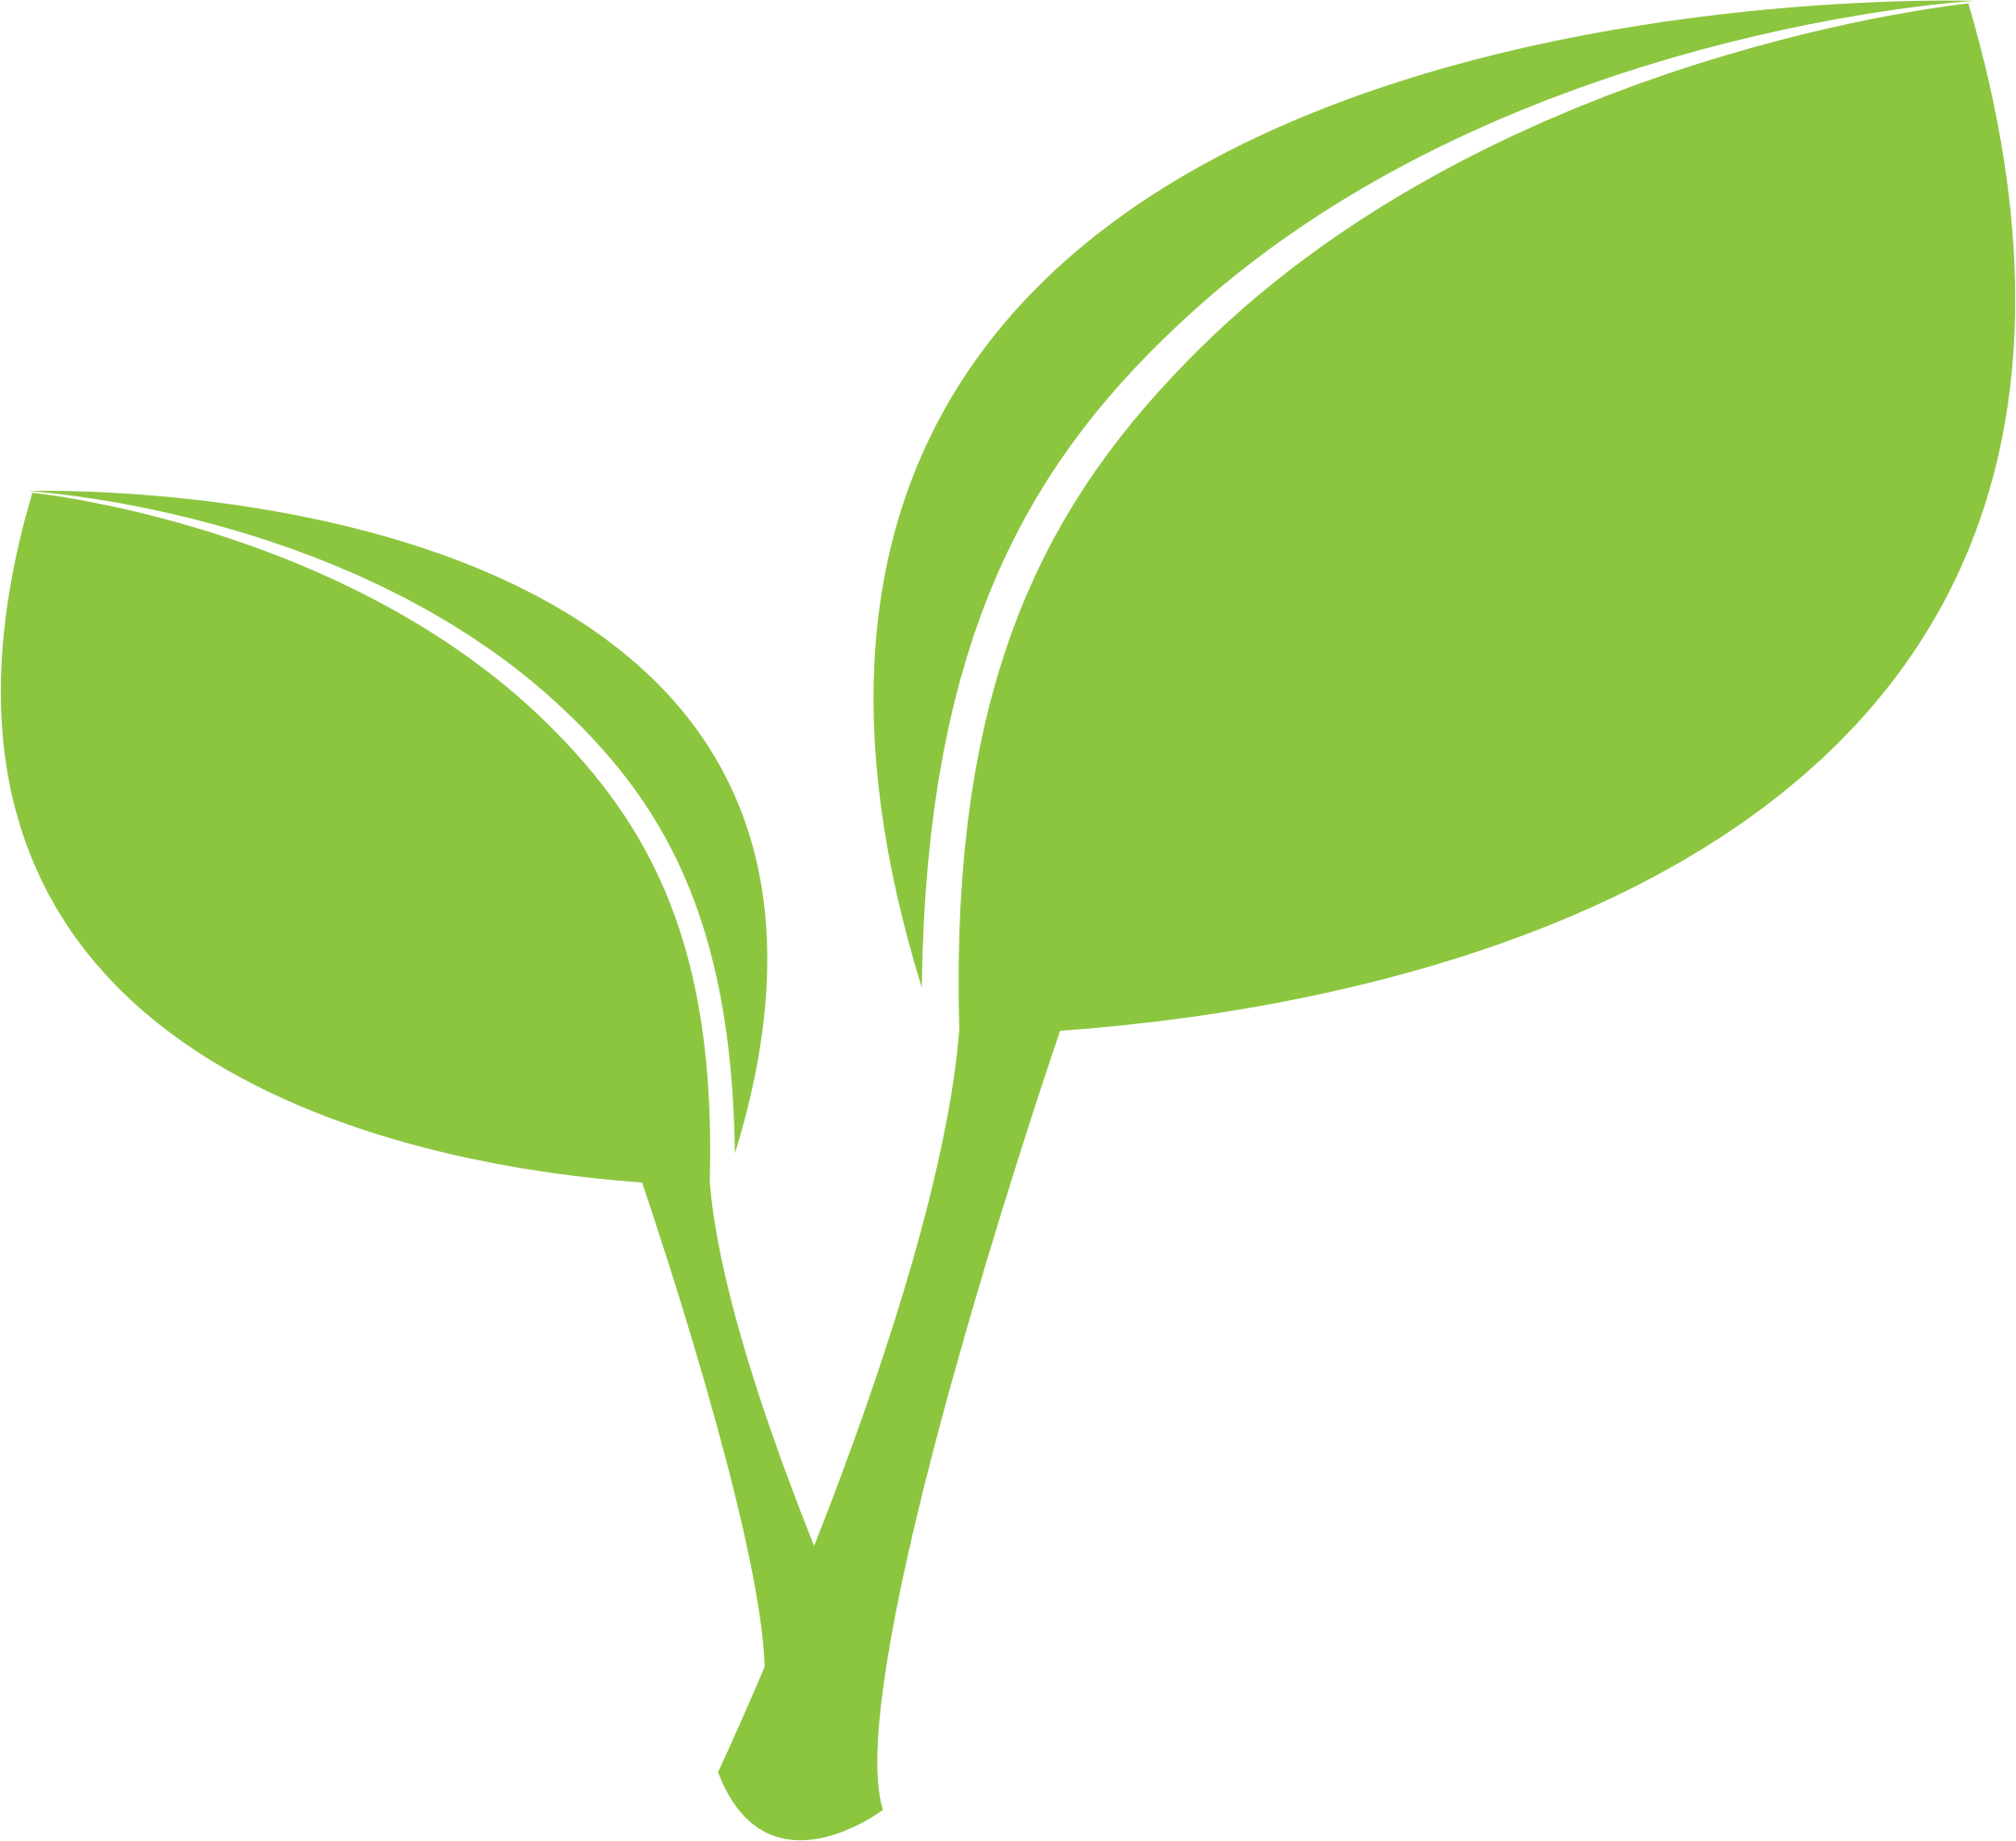 Leaves clipart png. Green graphics big image